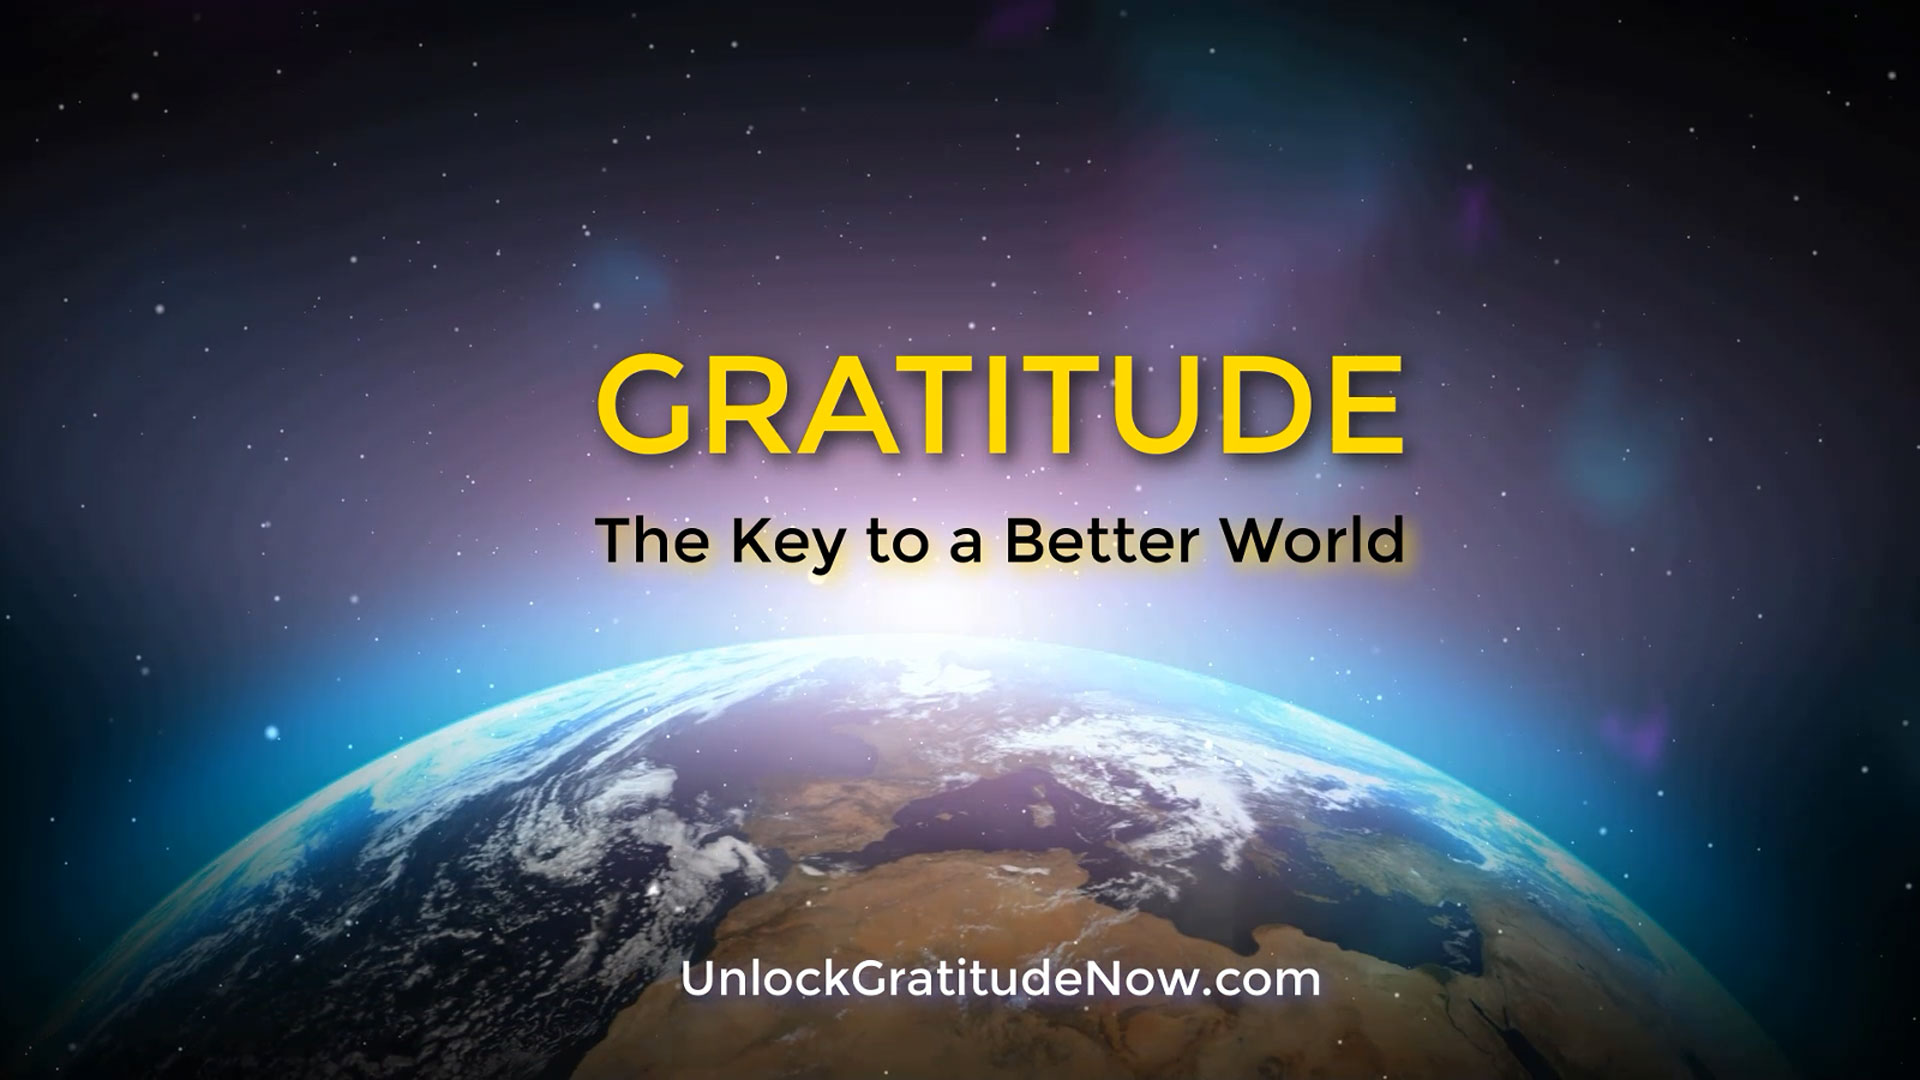 GRATITUDE is the key to a better world